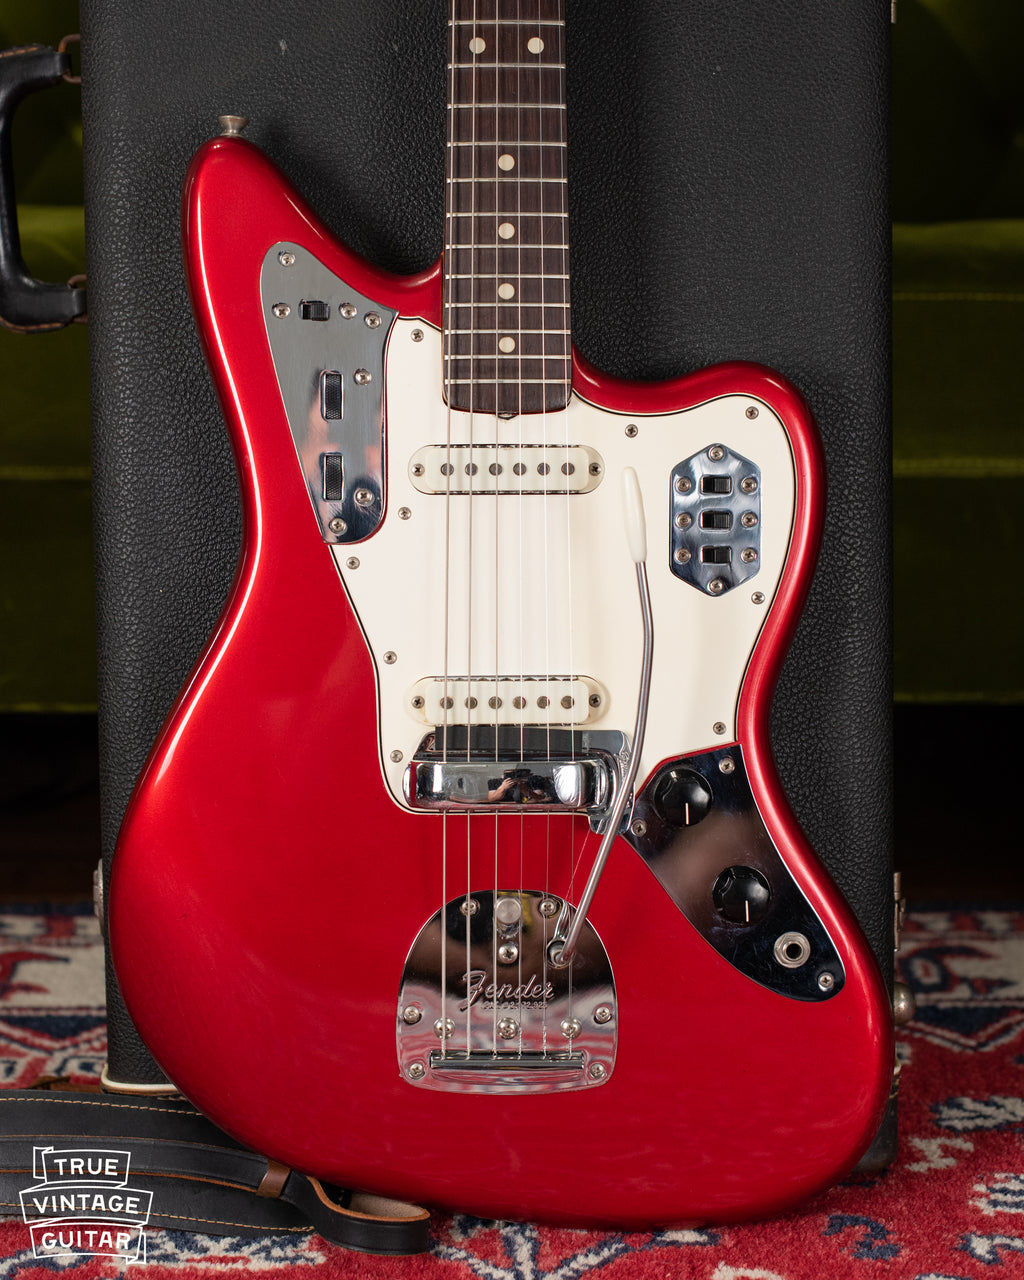 Vintage 1960s Fender Jaguar Red